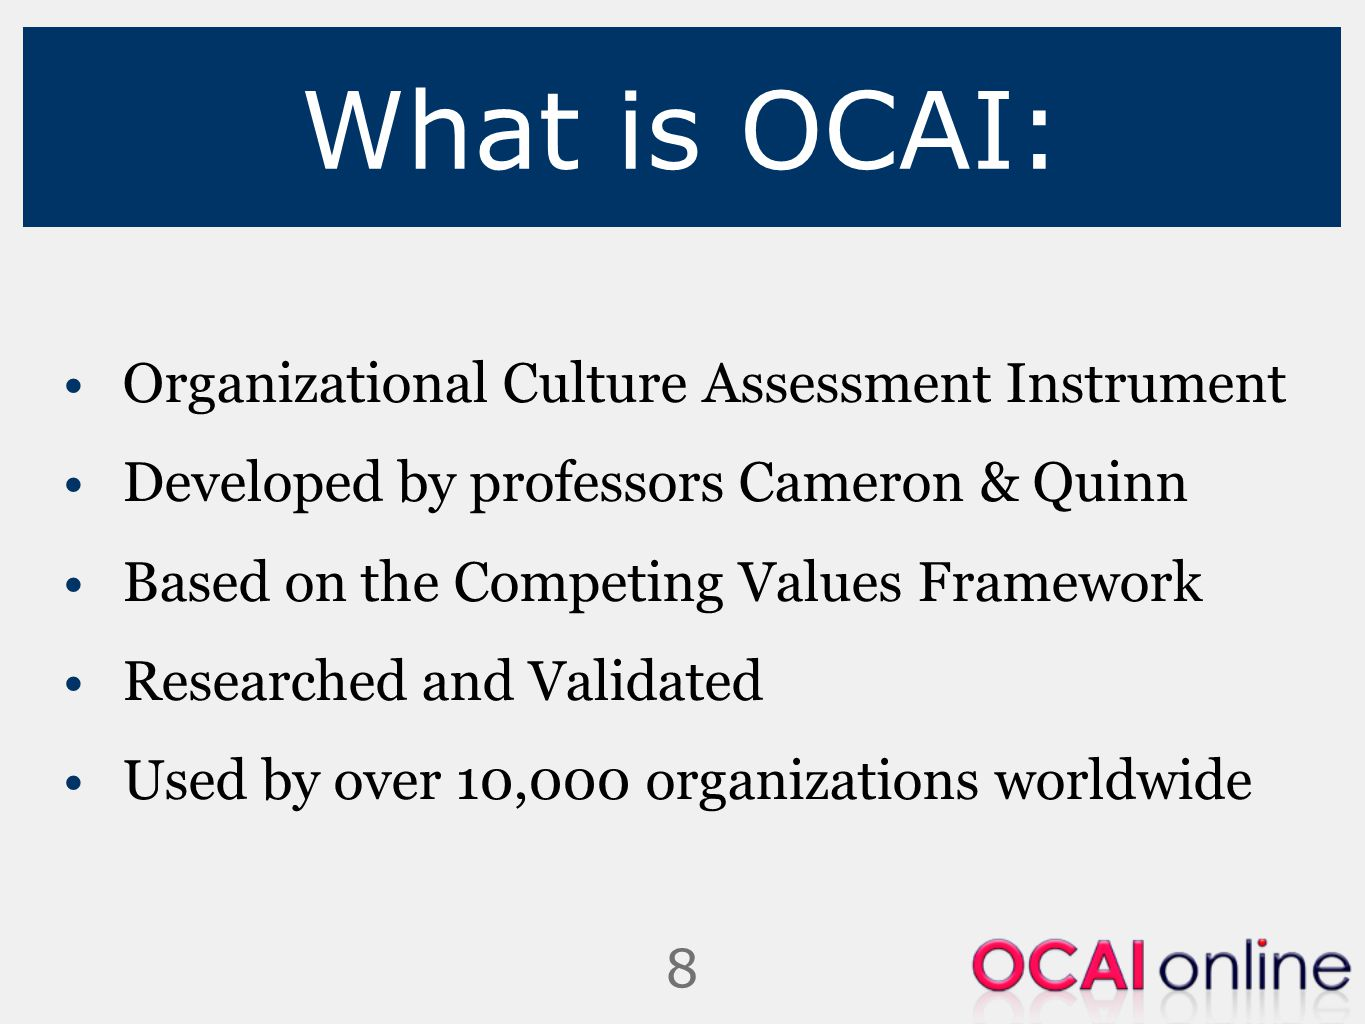 organizational culture assessment instrument The organizational culture assessment instrument (ocai) is a hassle-free tool for diagnosing organizational culture, developed by professors robert quinn and kim cameron.